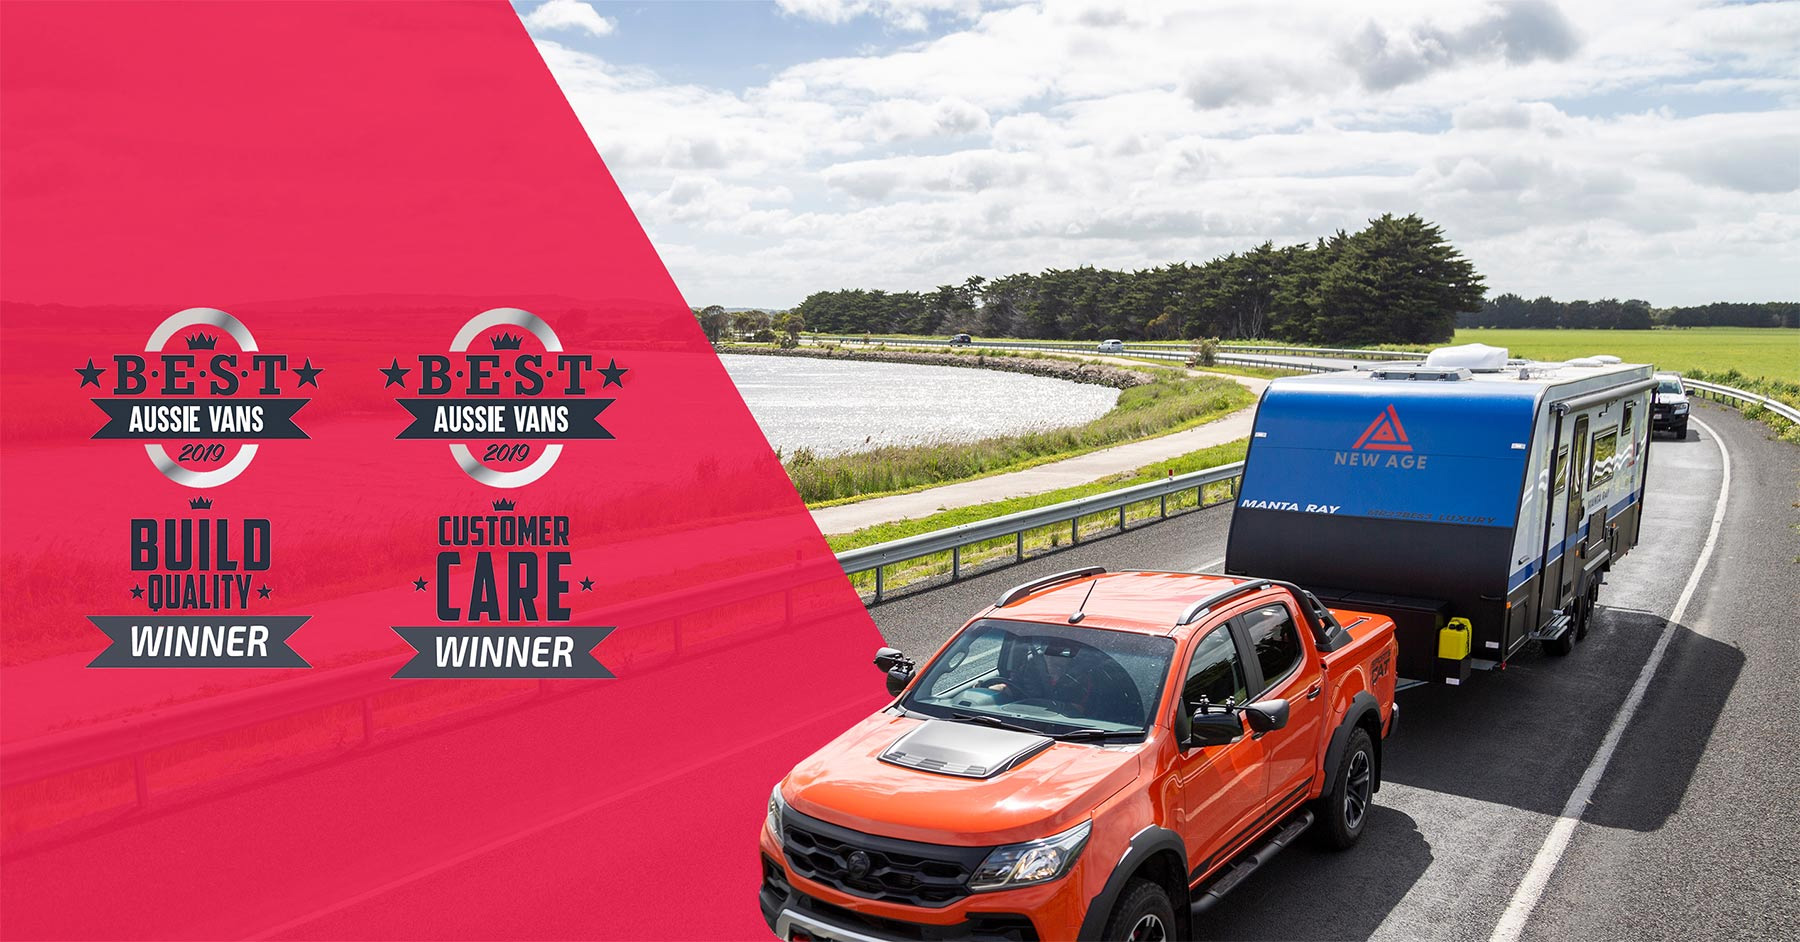 New Age Caravans has been annouced as the winner of the Best Aussie Vans Best Build Quality and Best Customer Care Awards.